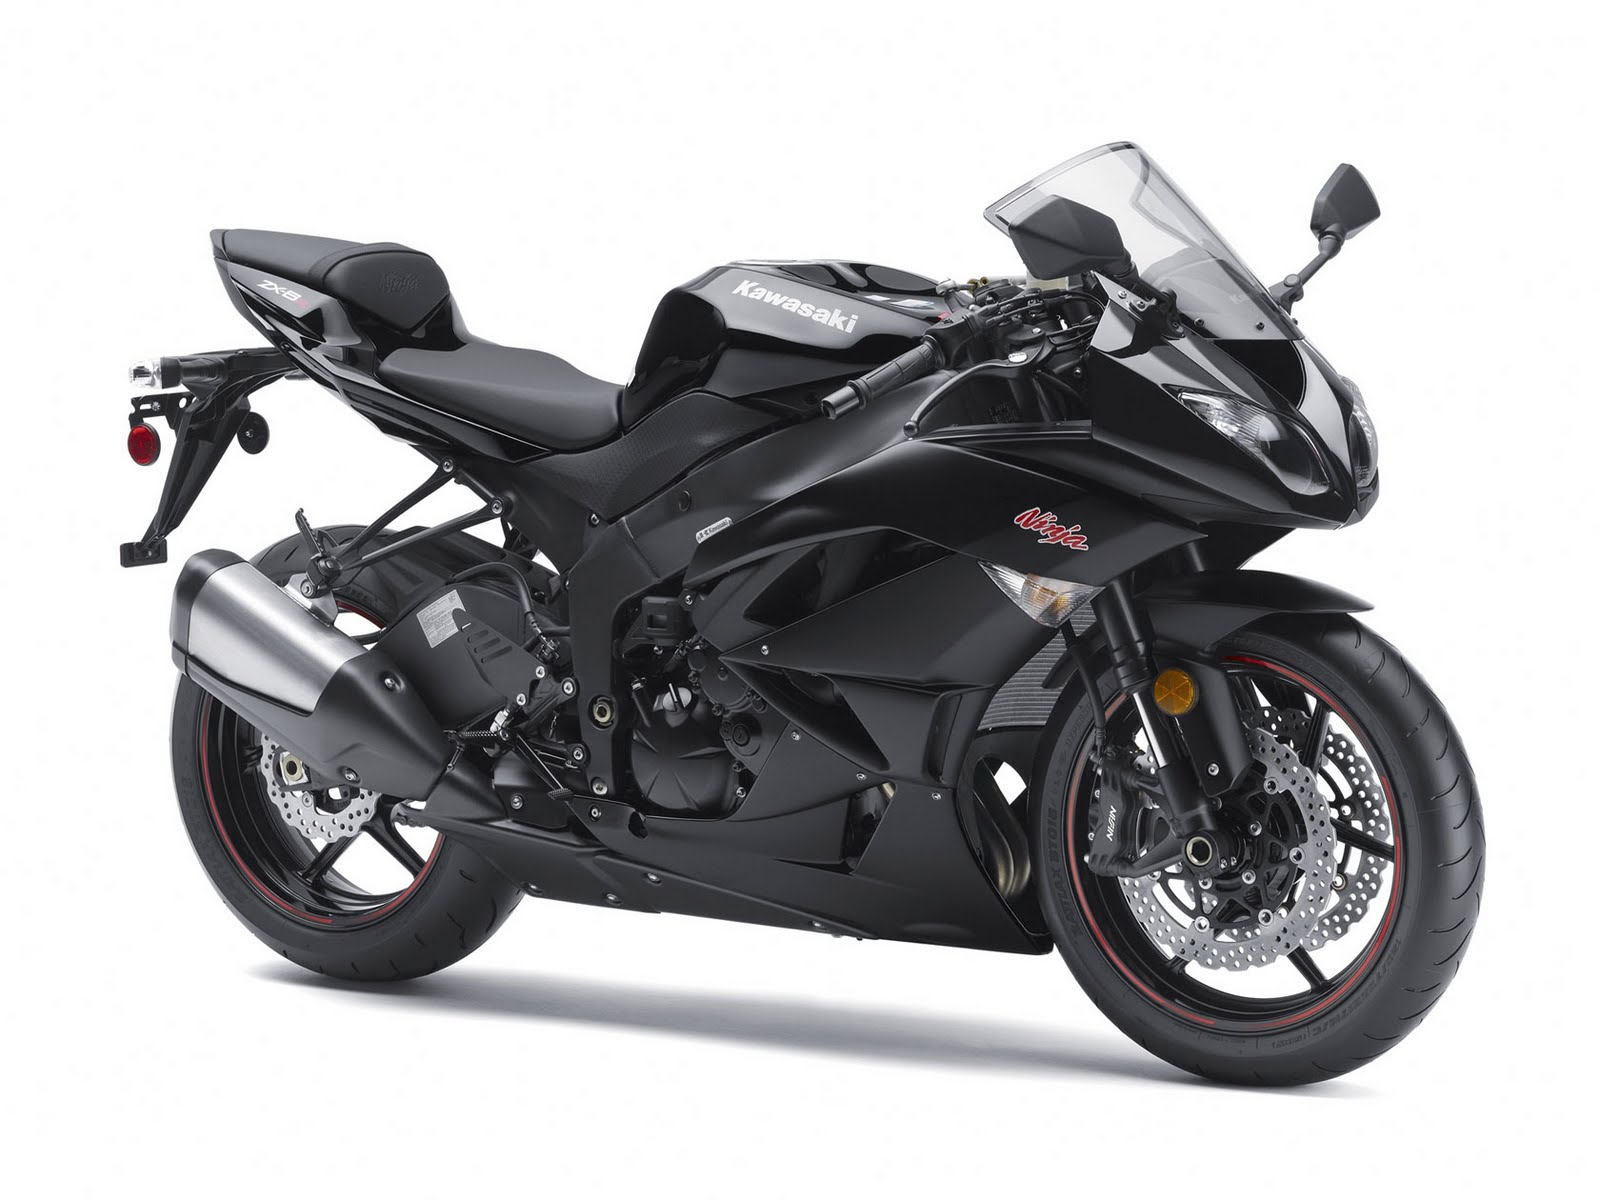 kawasaki ninja zx-6r wallpapers | beautiful cool wallpapers